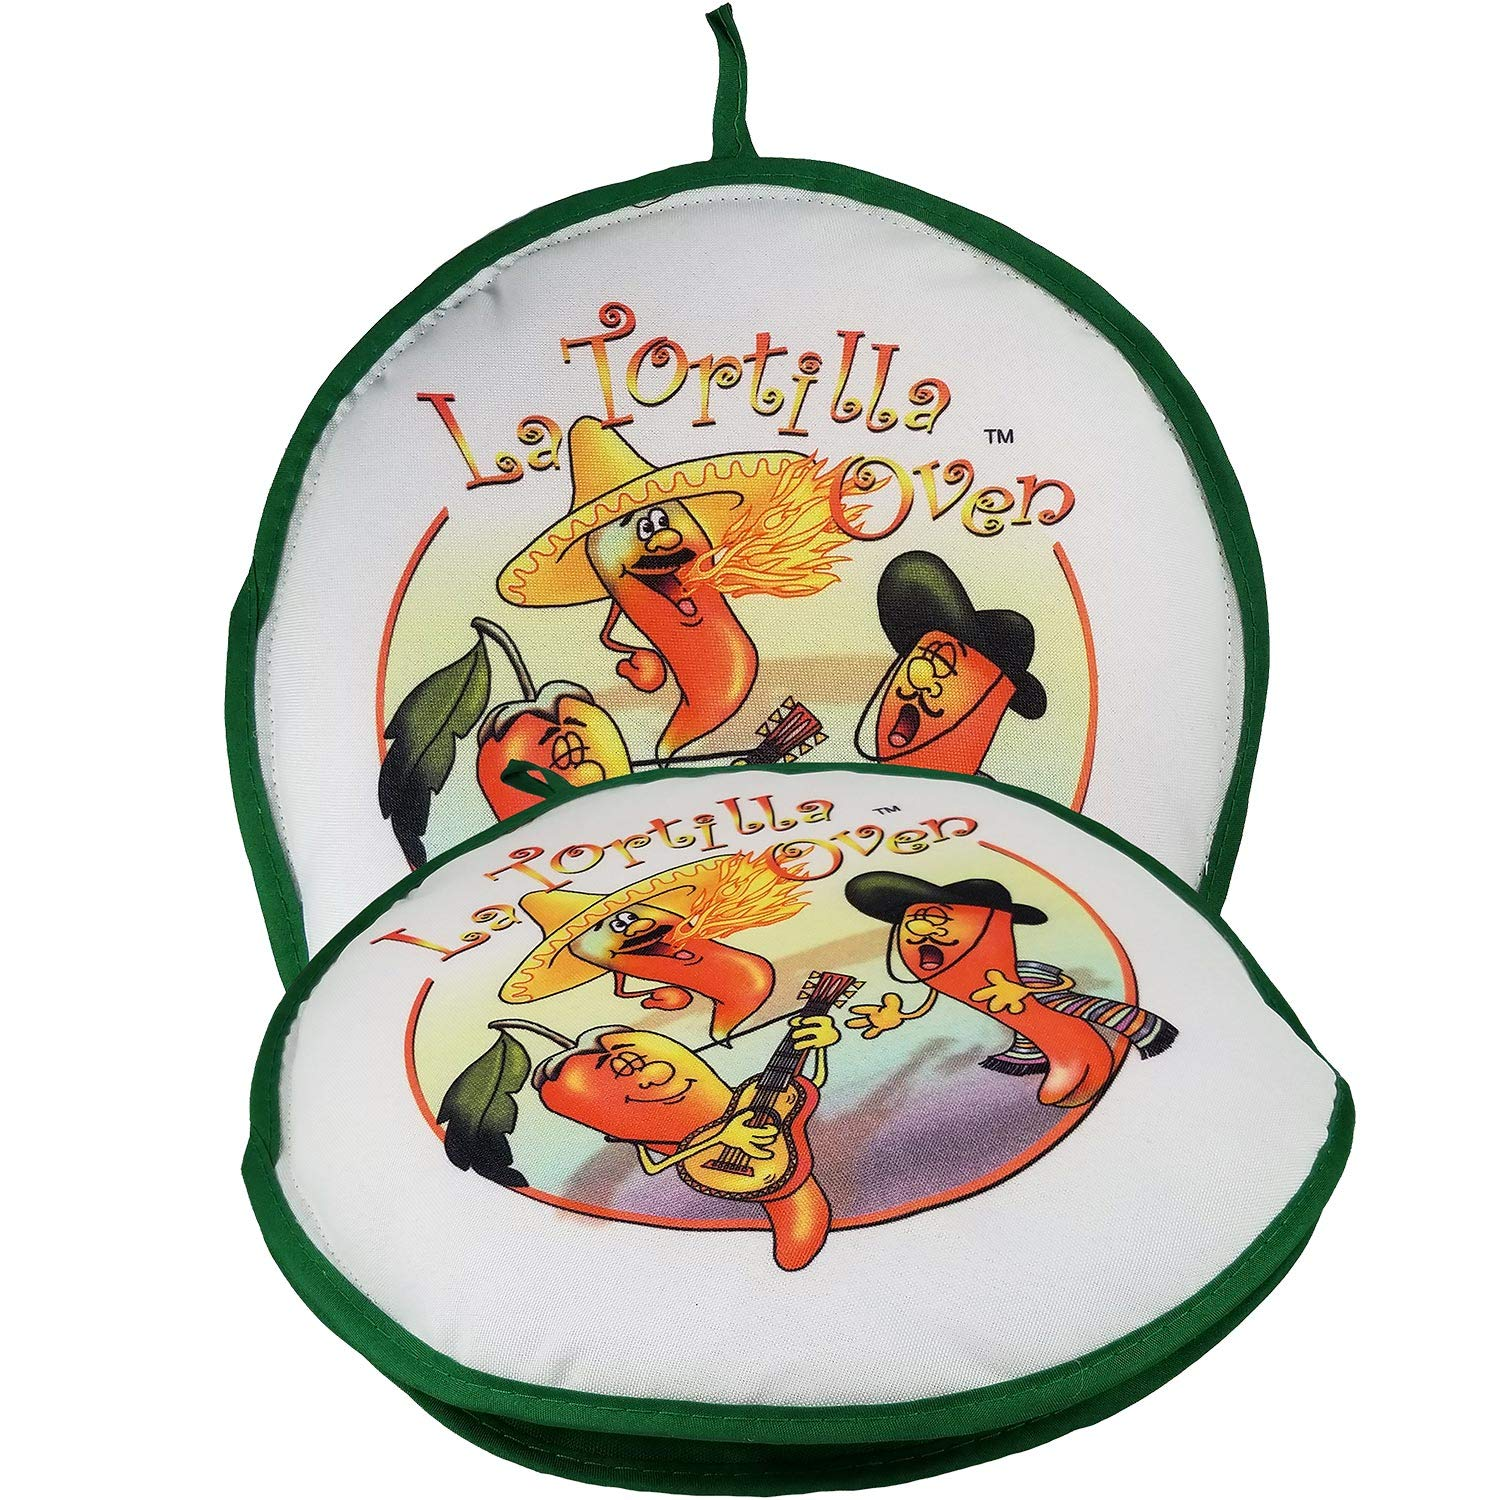 "10"" Tortilla Warmer Keeps Tortillas FRESH AND WARM FOR OVER 1 HOUR! Singing peppers tortilla pouch keeps corn & flour tortillas warm from the skillet, pan, grill or microwave!"